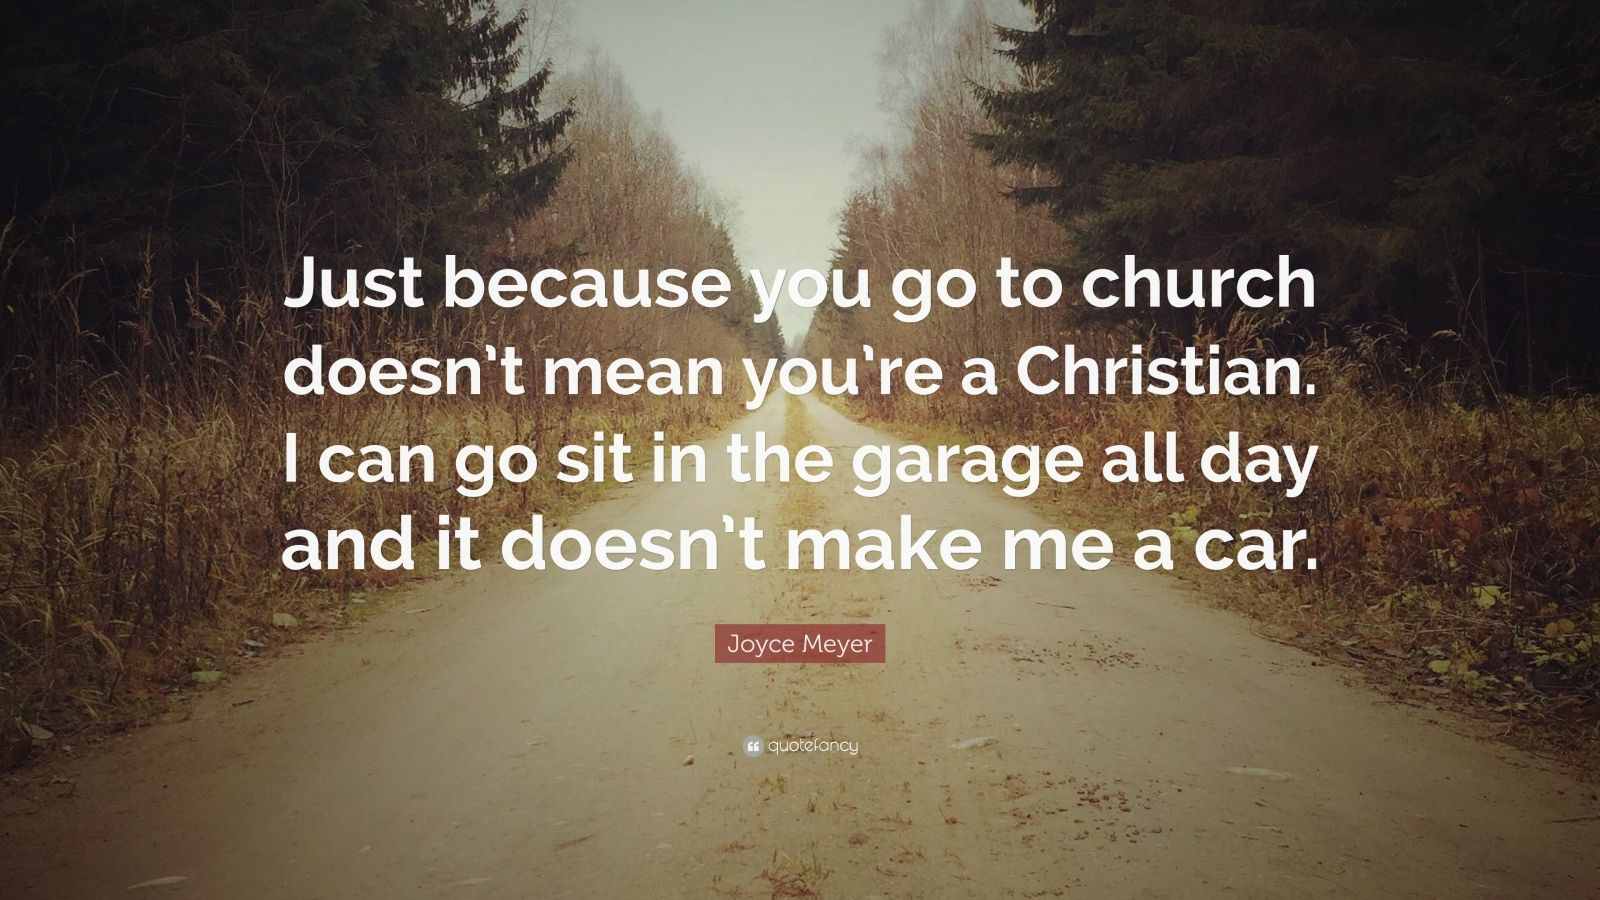 Joyce Meyer Quote   U201cjust Because You Go To Church Doesn U2019t